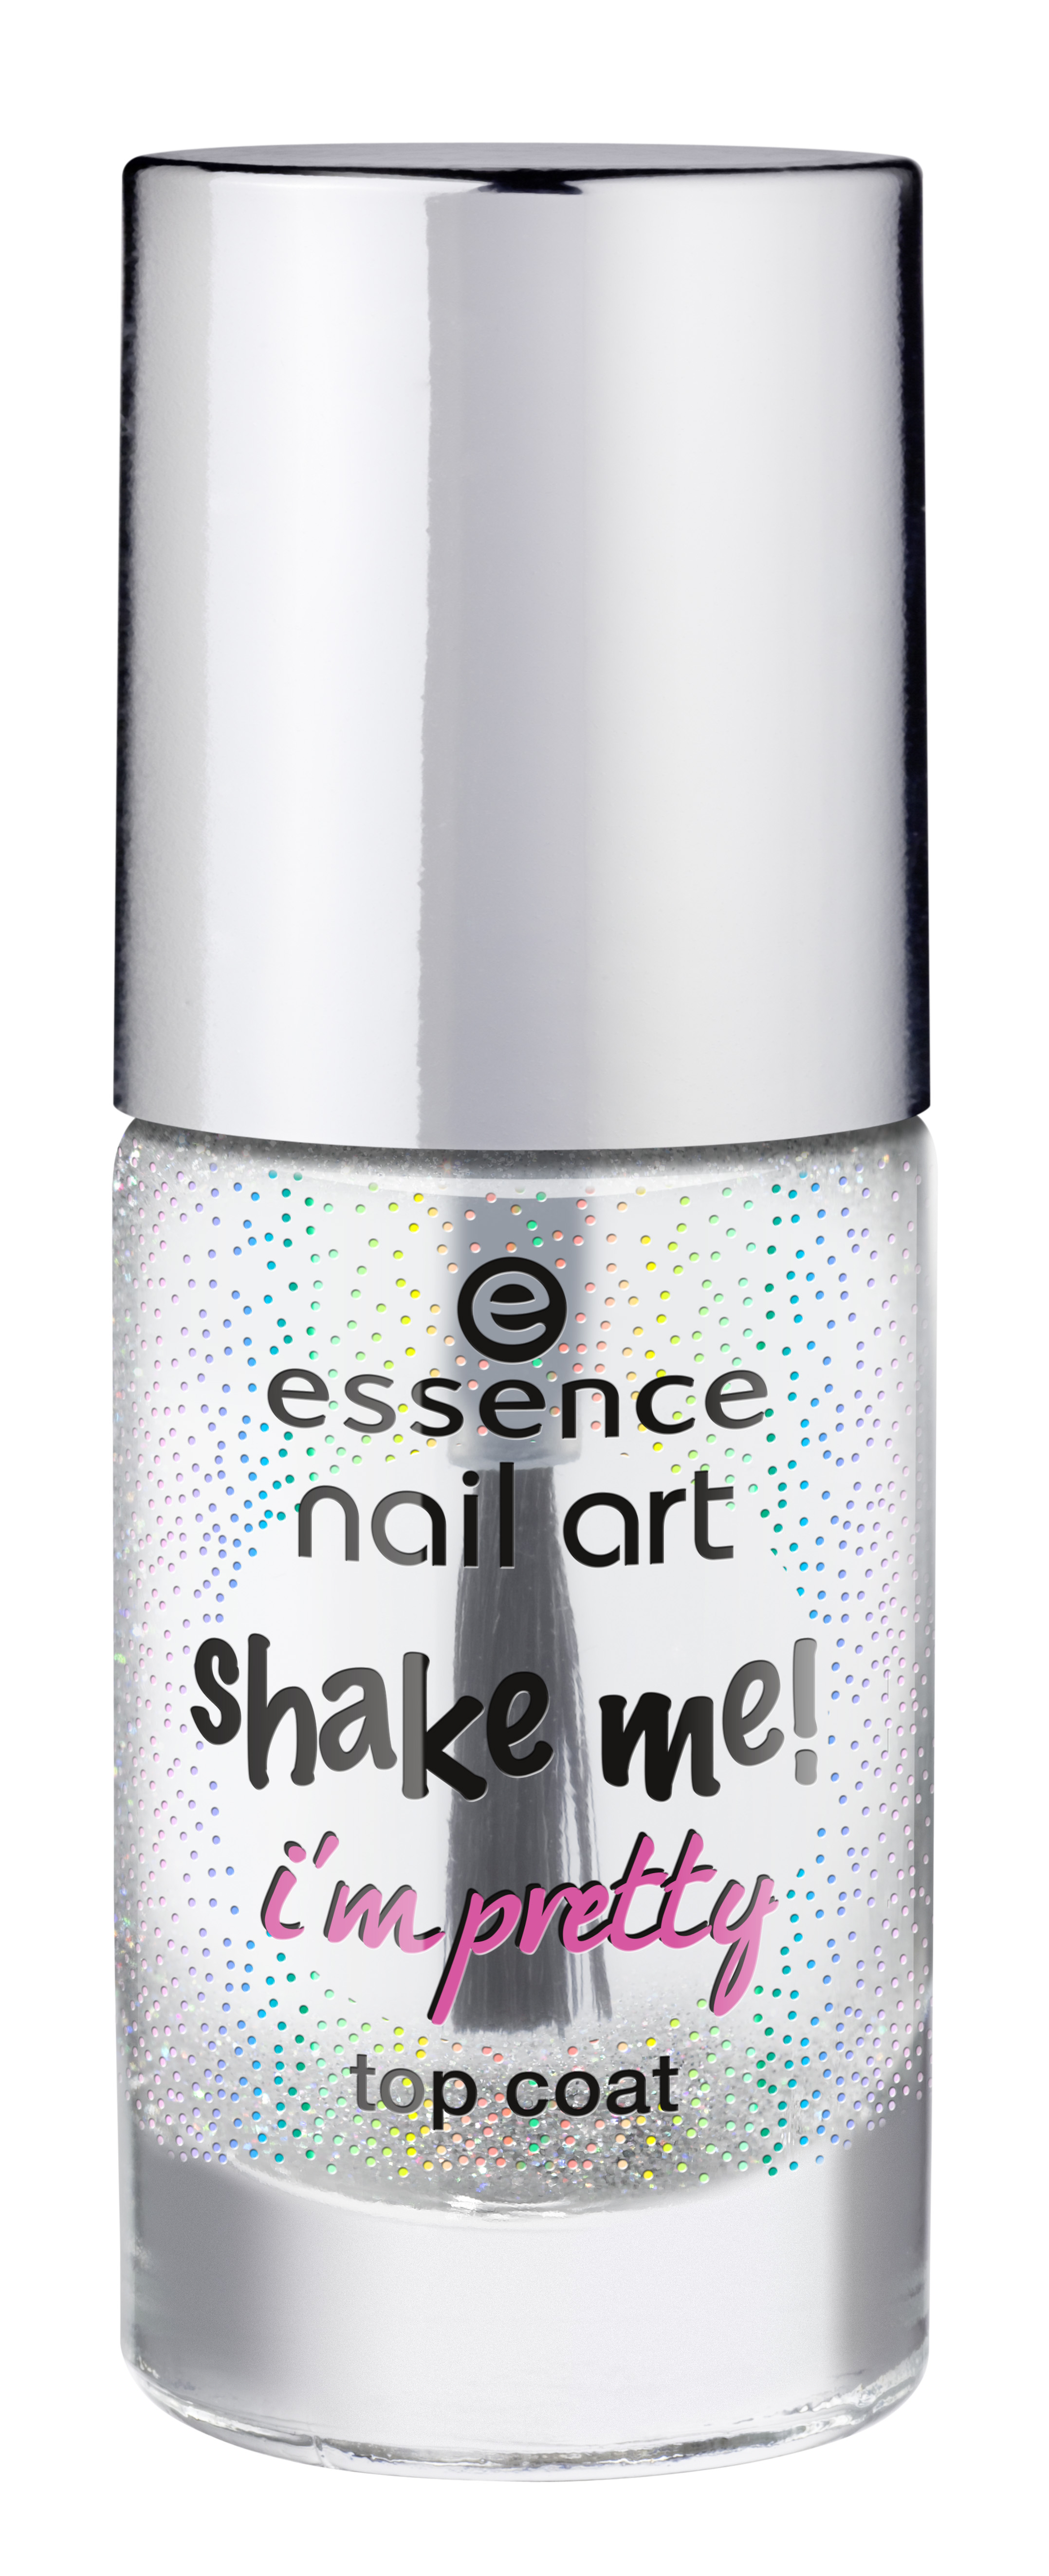 essence nail art shake me! i?m pretty top coat 25